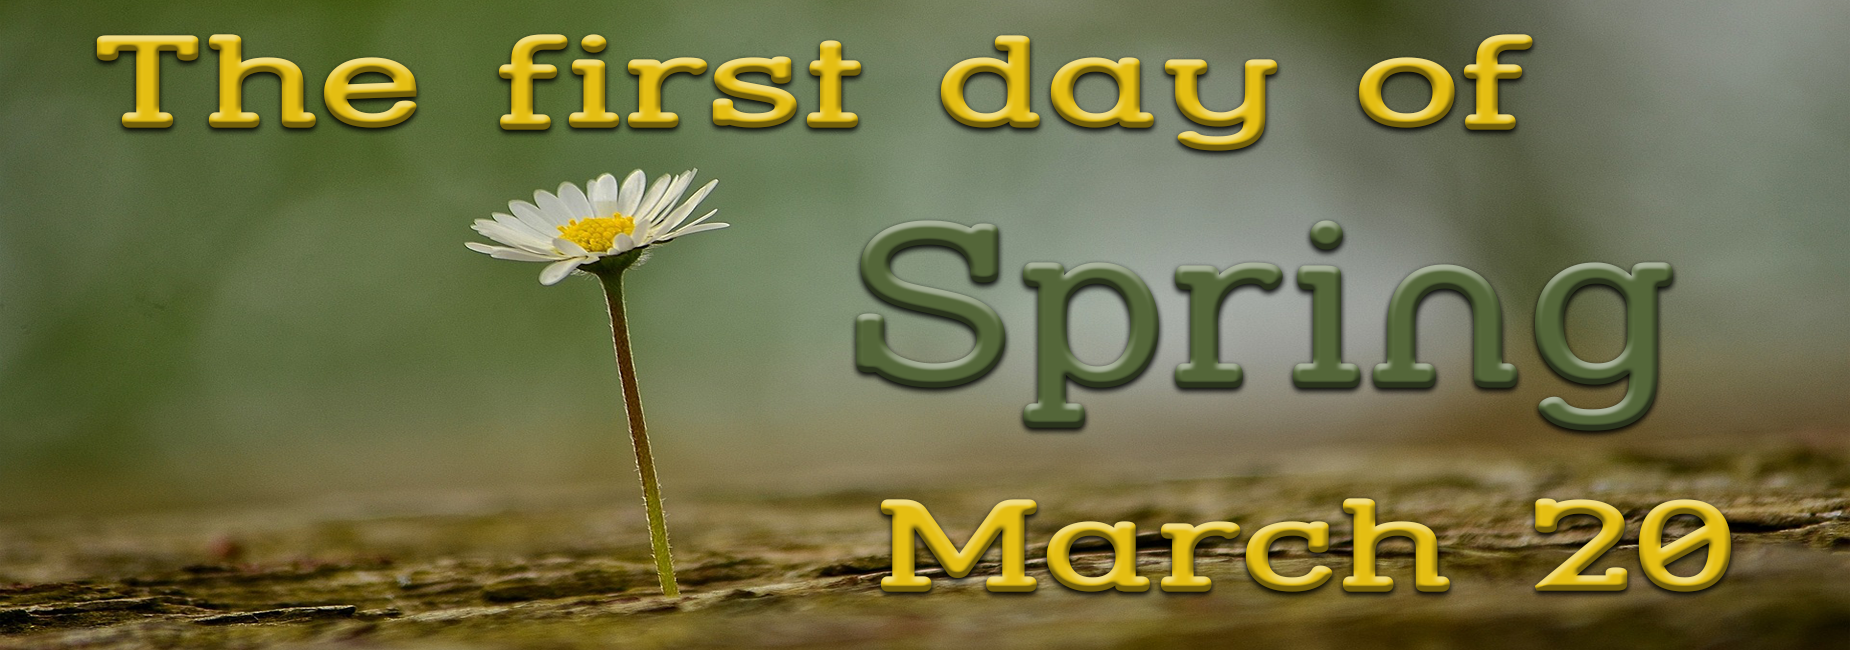 First Day of Spring Marc 20th